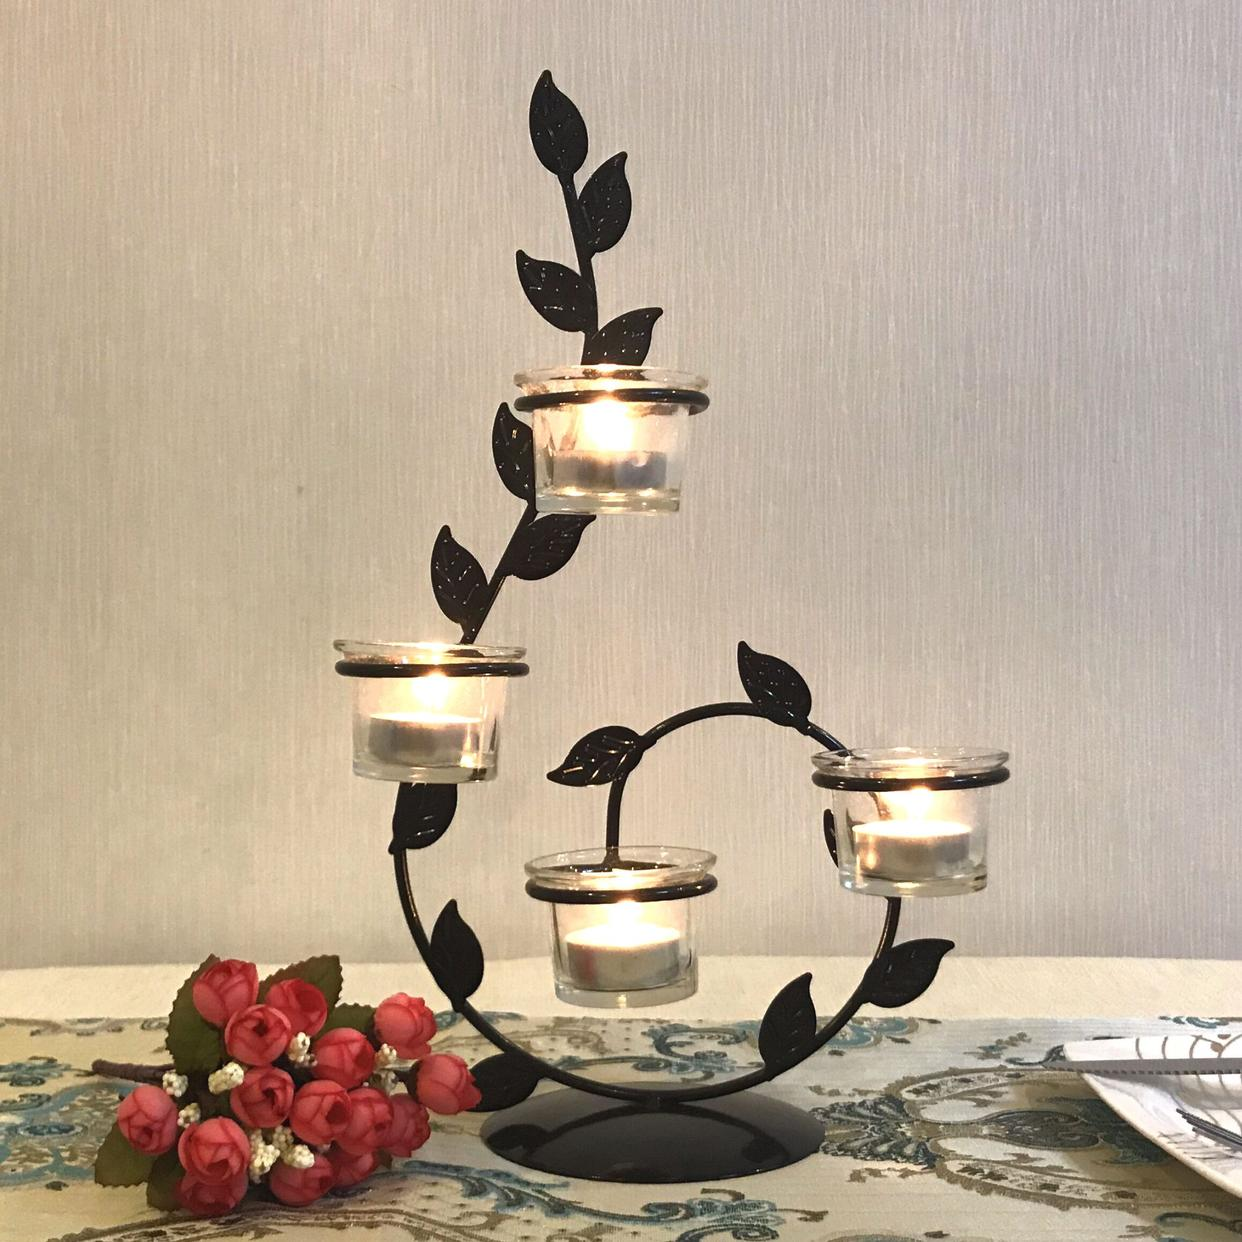 European Wrought Iron Candle Holder Valentines Day Romantic Creative Home Candlelight Dinner Wedding Candlestick DecorationEuropean Wrought Iron Candle Holder Valentines Day Romantic Creative Home Candlelight Dinner Wedding Candlestick Decoration